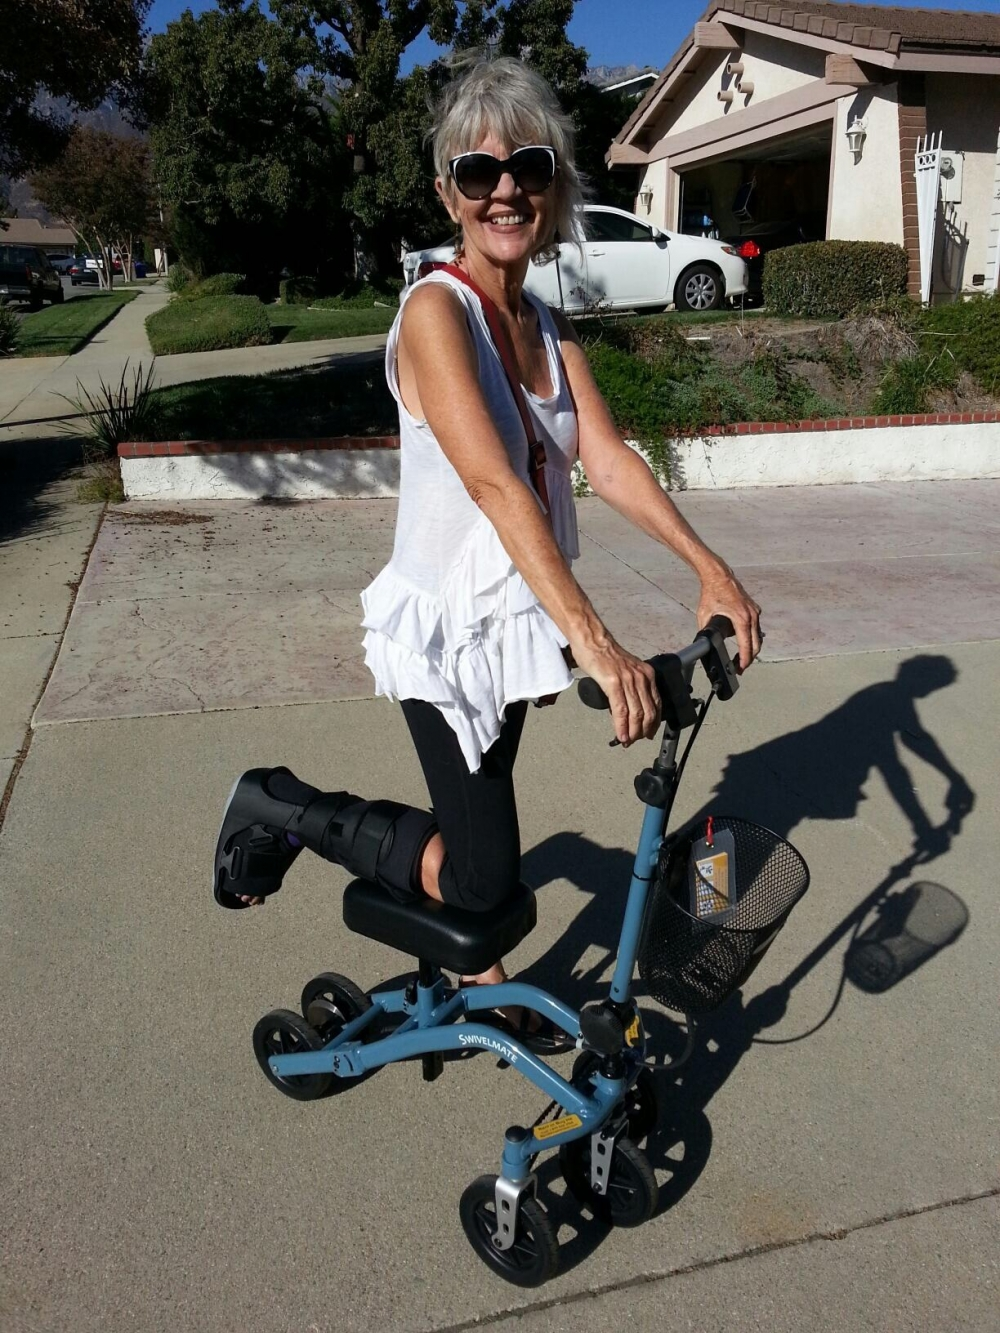 Beverly on the Swivelmate Knee Walker from Rancho Cucamonga California November 2014